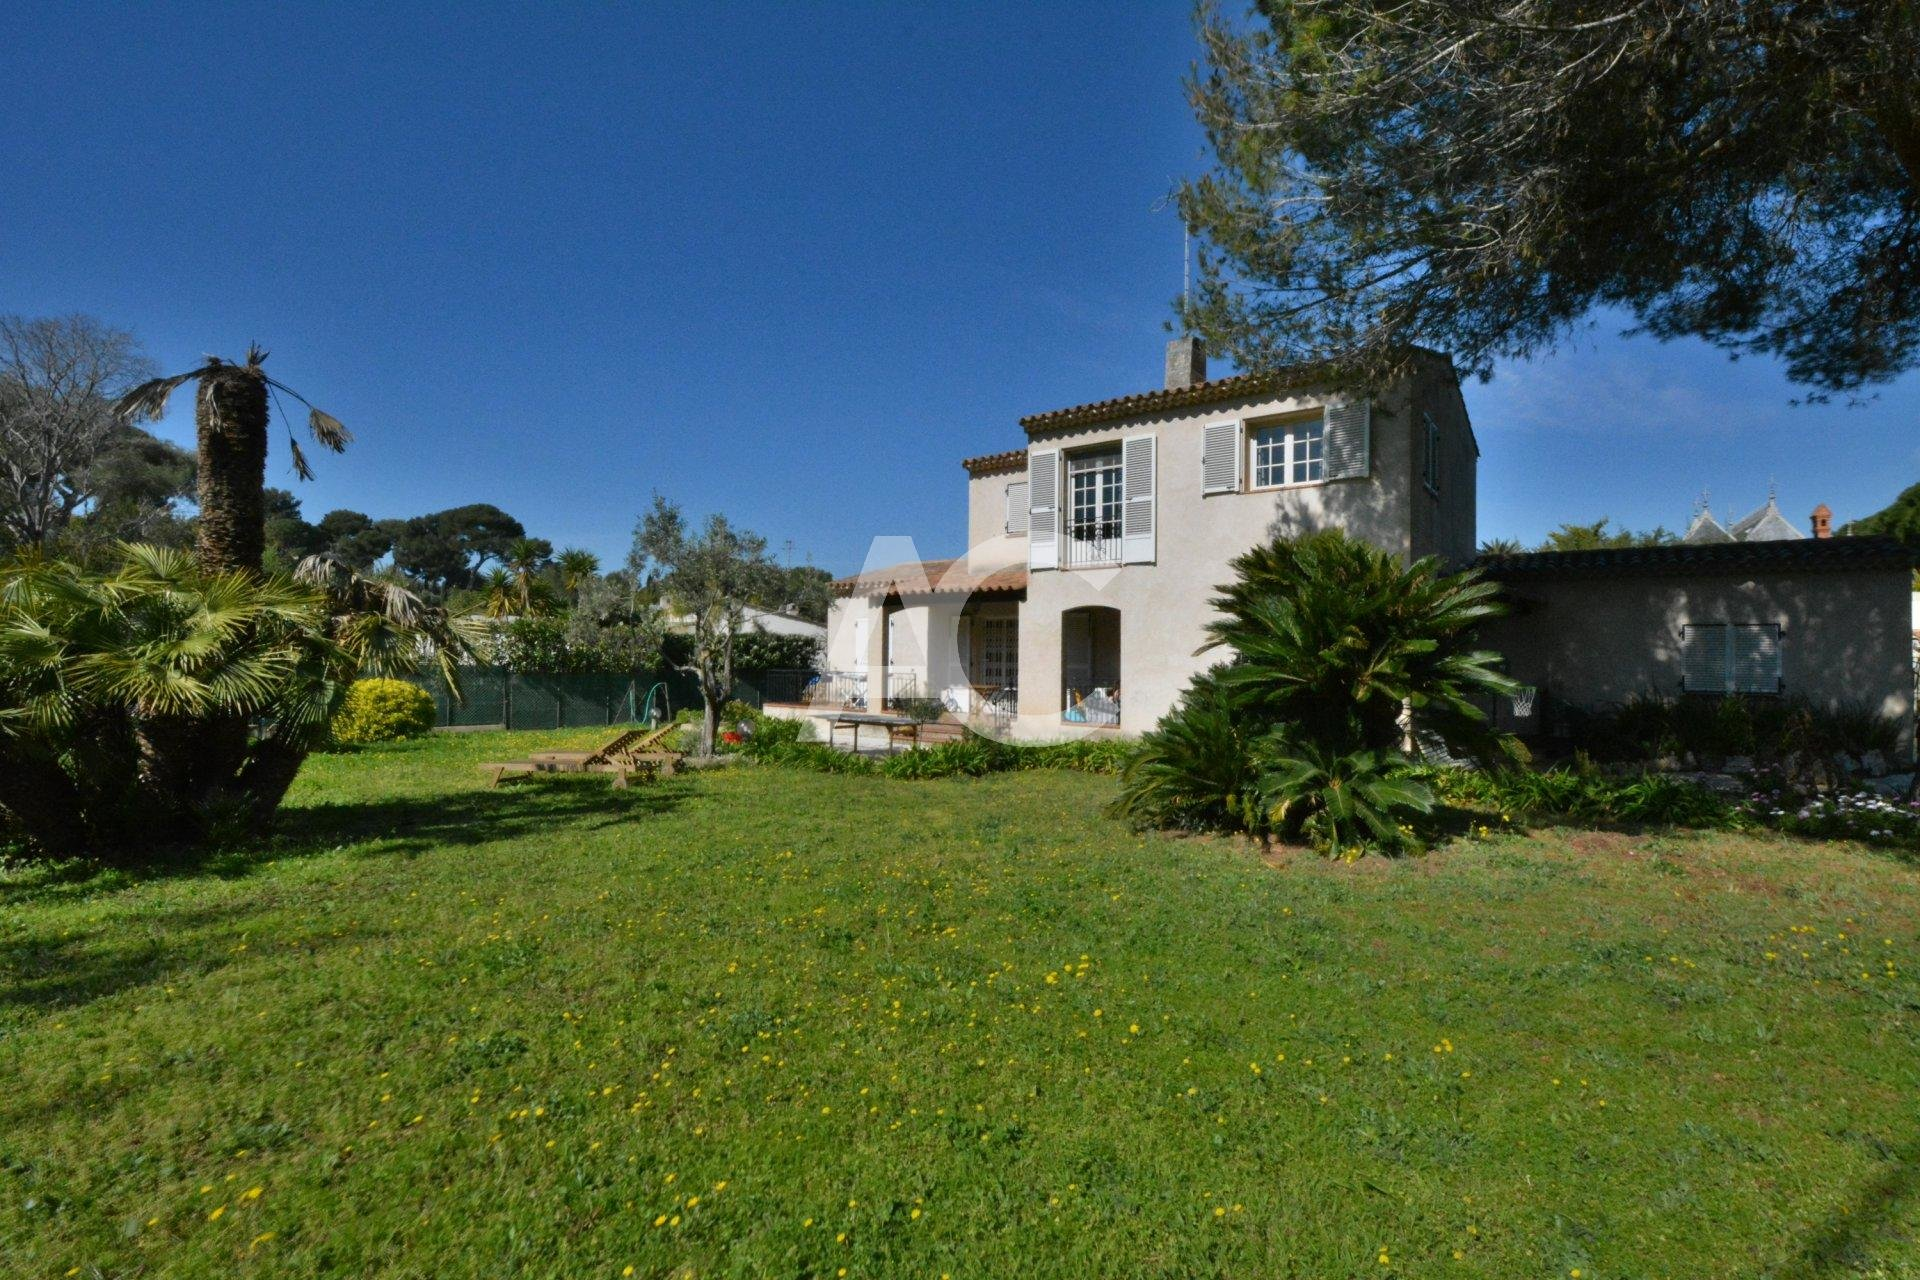 Villa close to Eden Roc - 100m from the beach